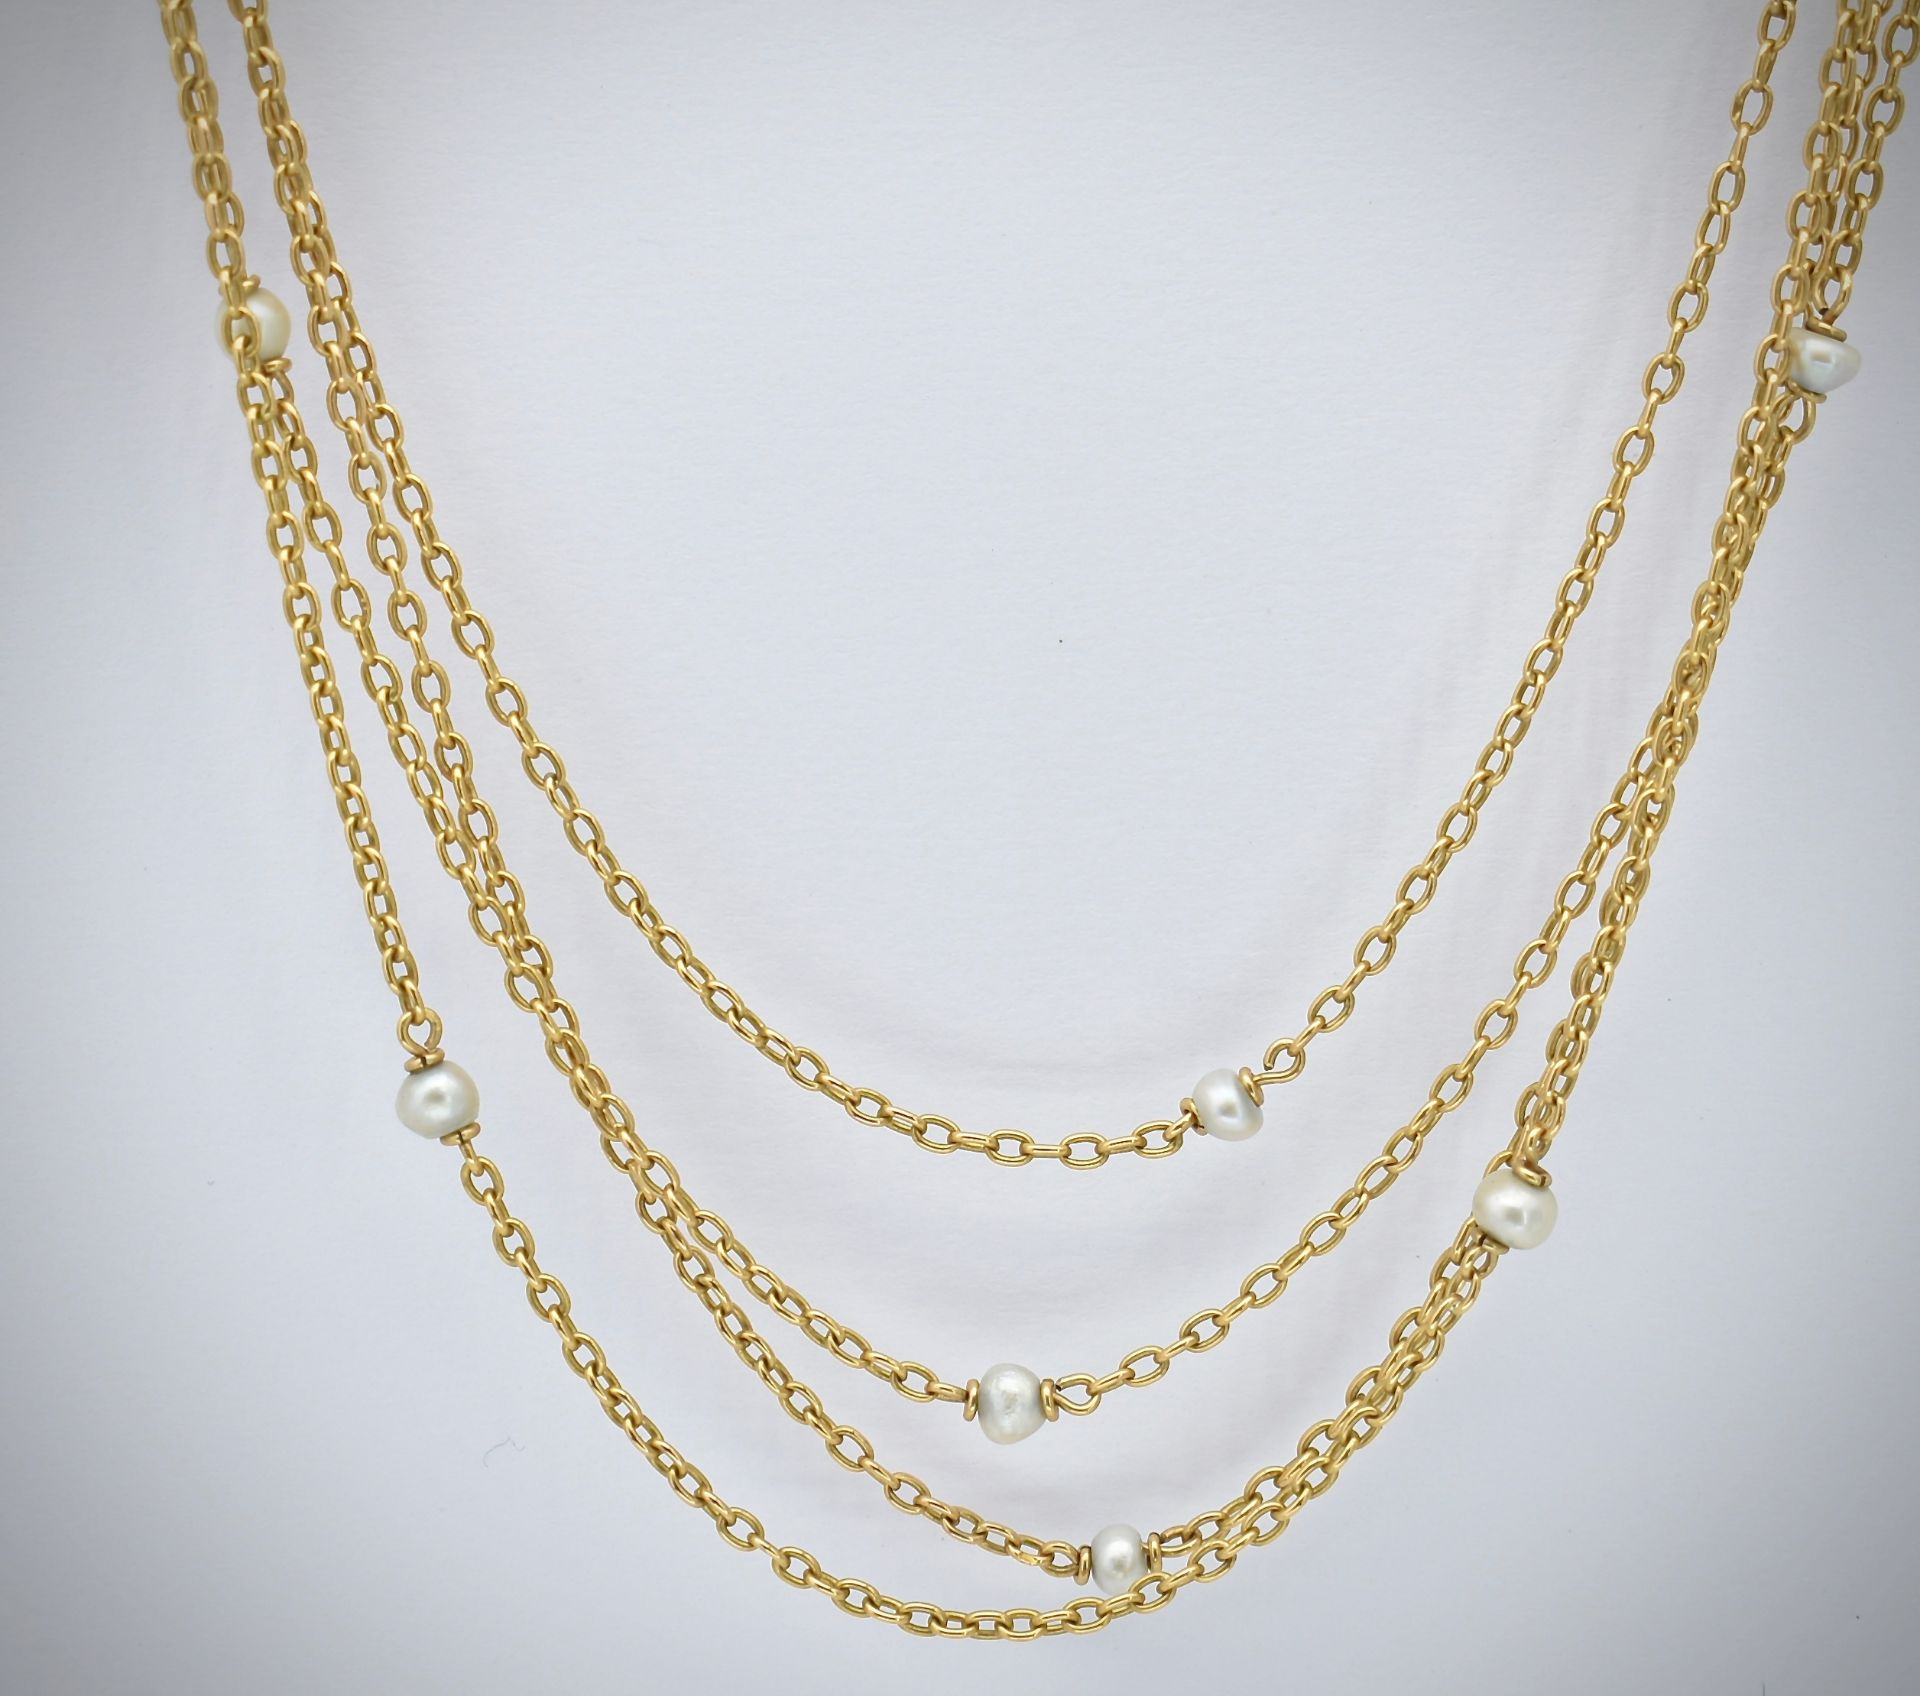 French 18ct Gold & Pearl Four Strand Necklace - Image 3 of 4